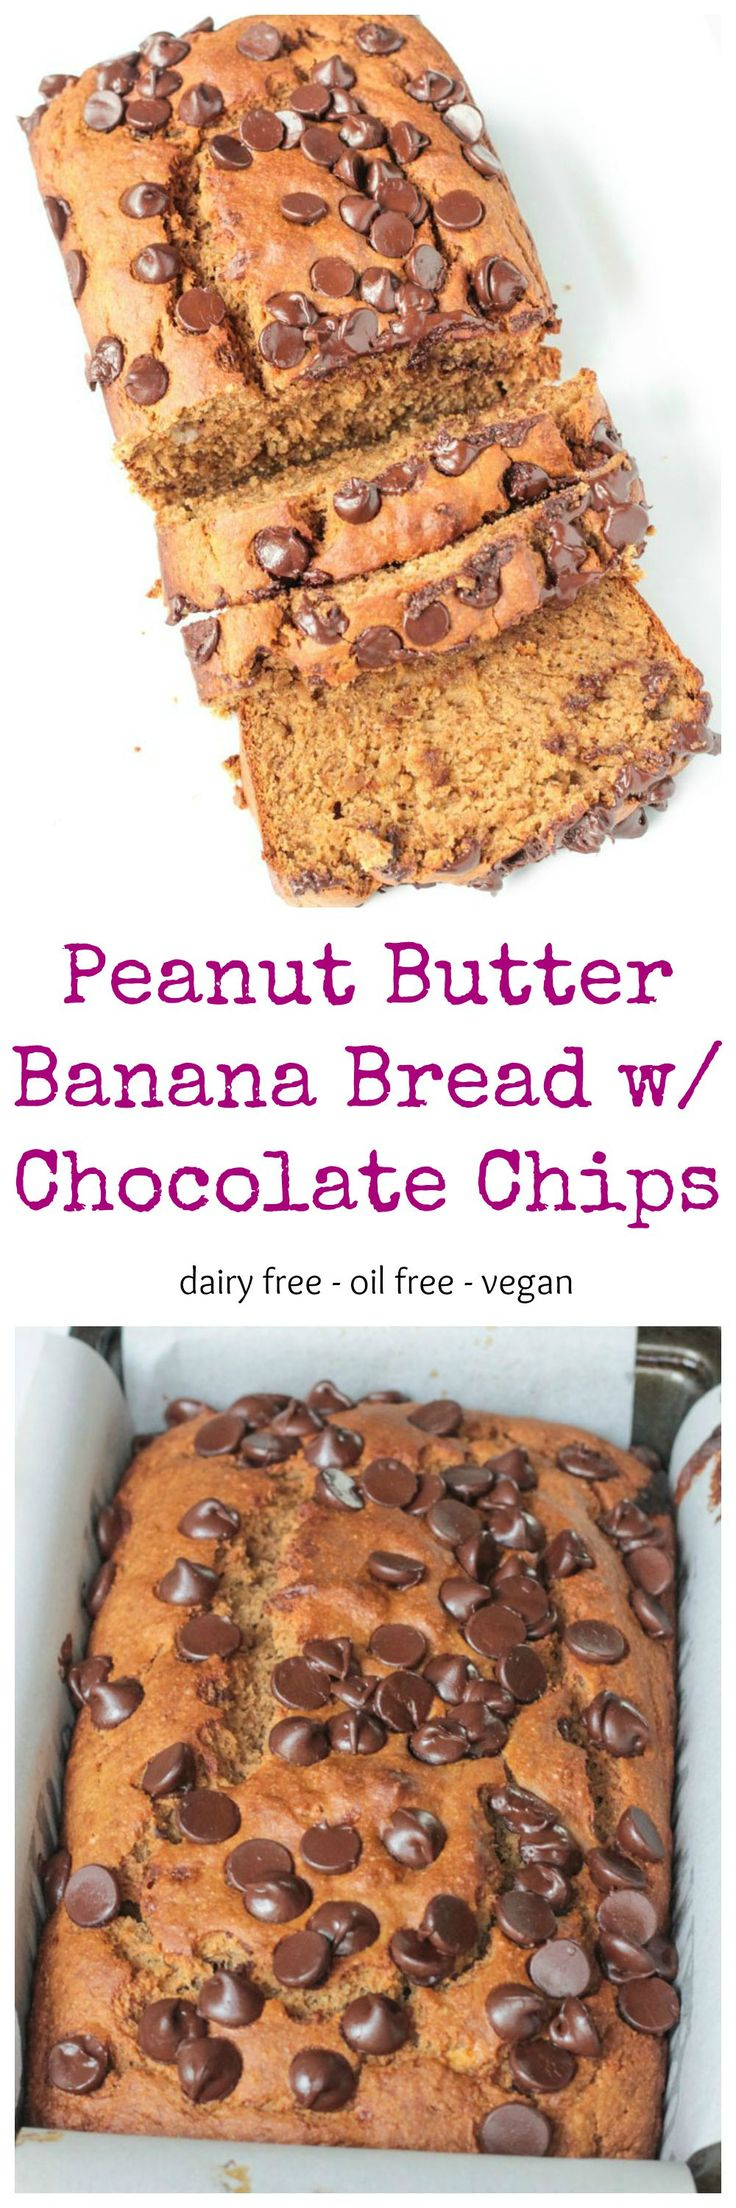 Peanut Butter Banana Bread w/ Chocolate Chips - a healthy quick bread your whole family will love! This egg free bread rises just like traditional bread. No one will guess it's vegan! Dig in!! #quickbread #bananabread #peanutbutter #healthy #chocolatechips #vegan #nooil #oilfree #dairyfree